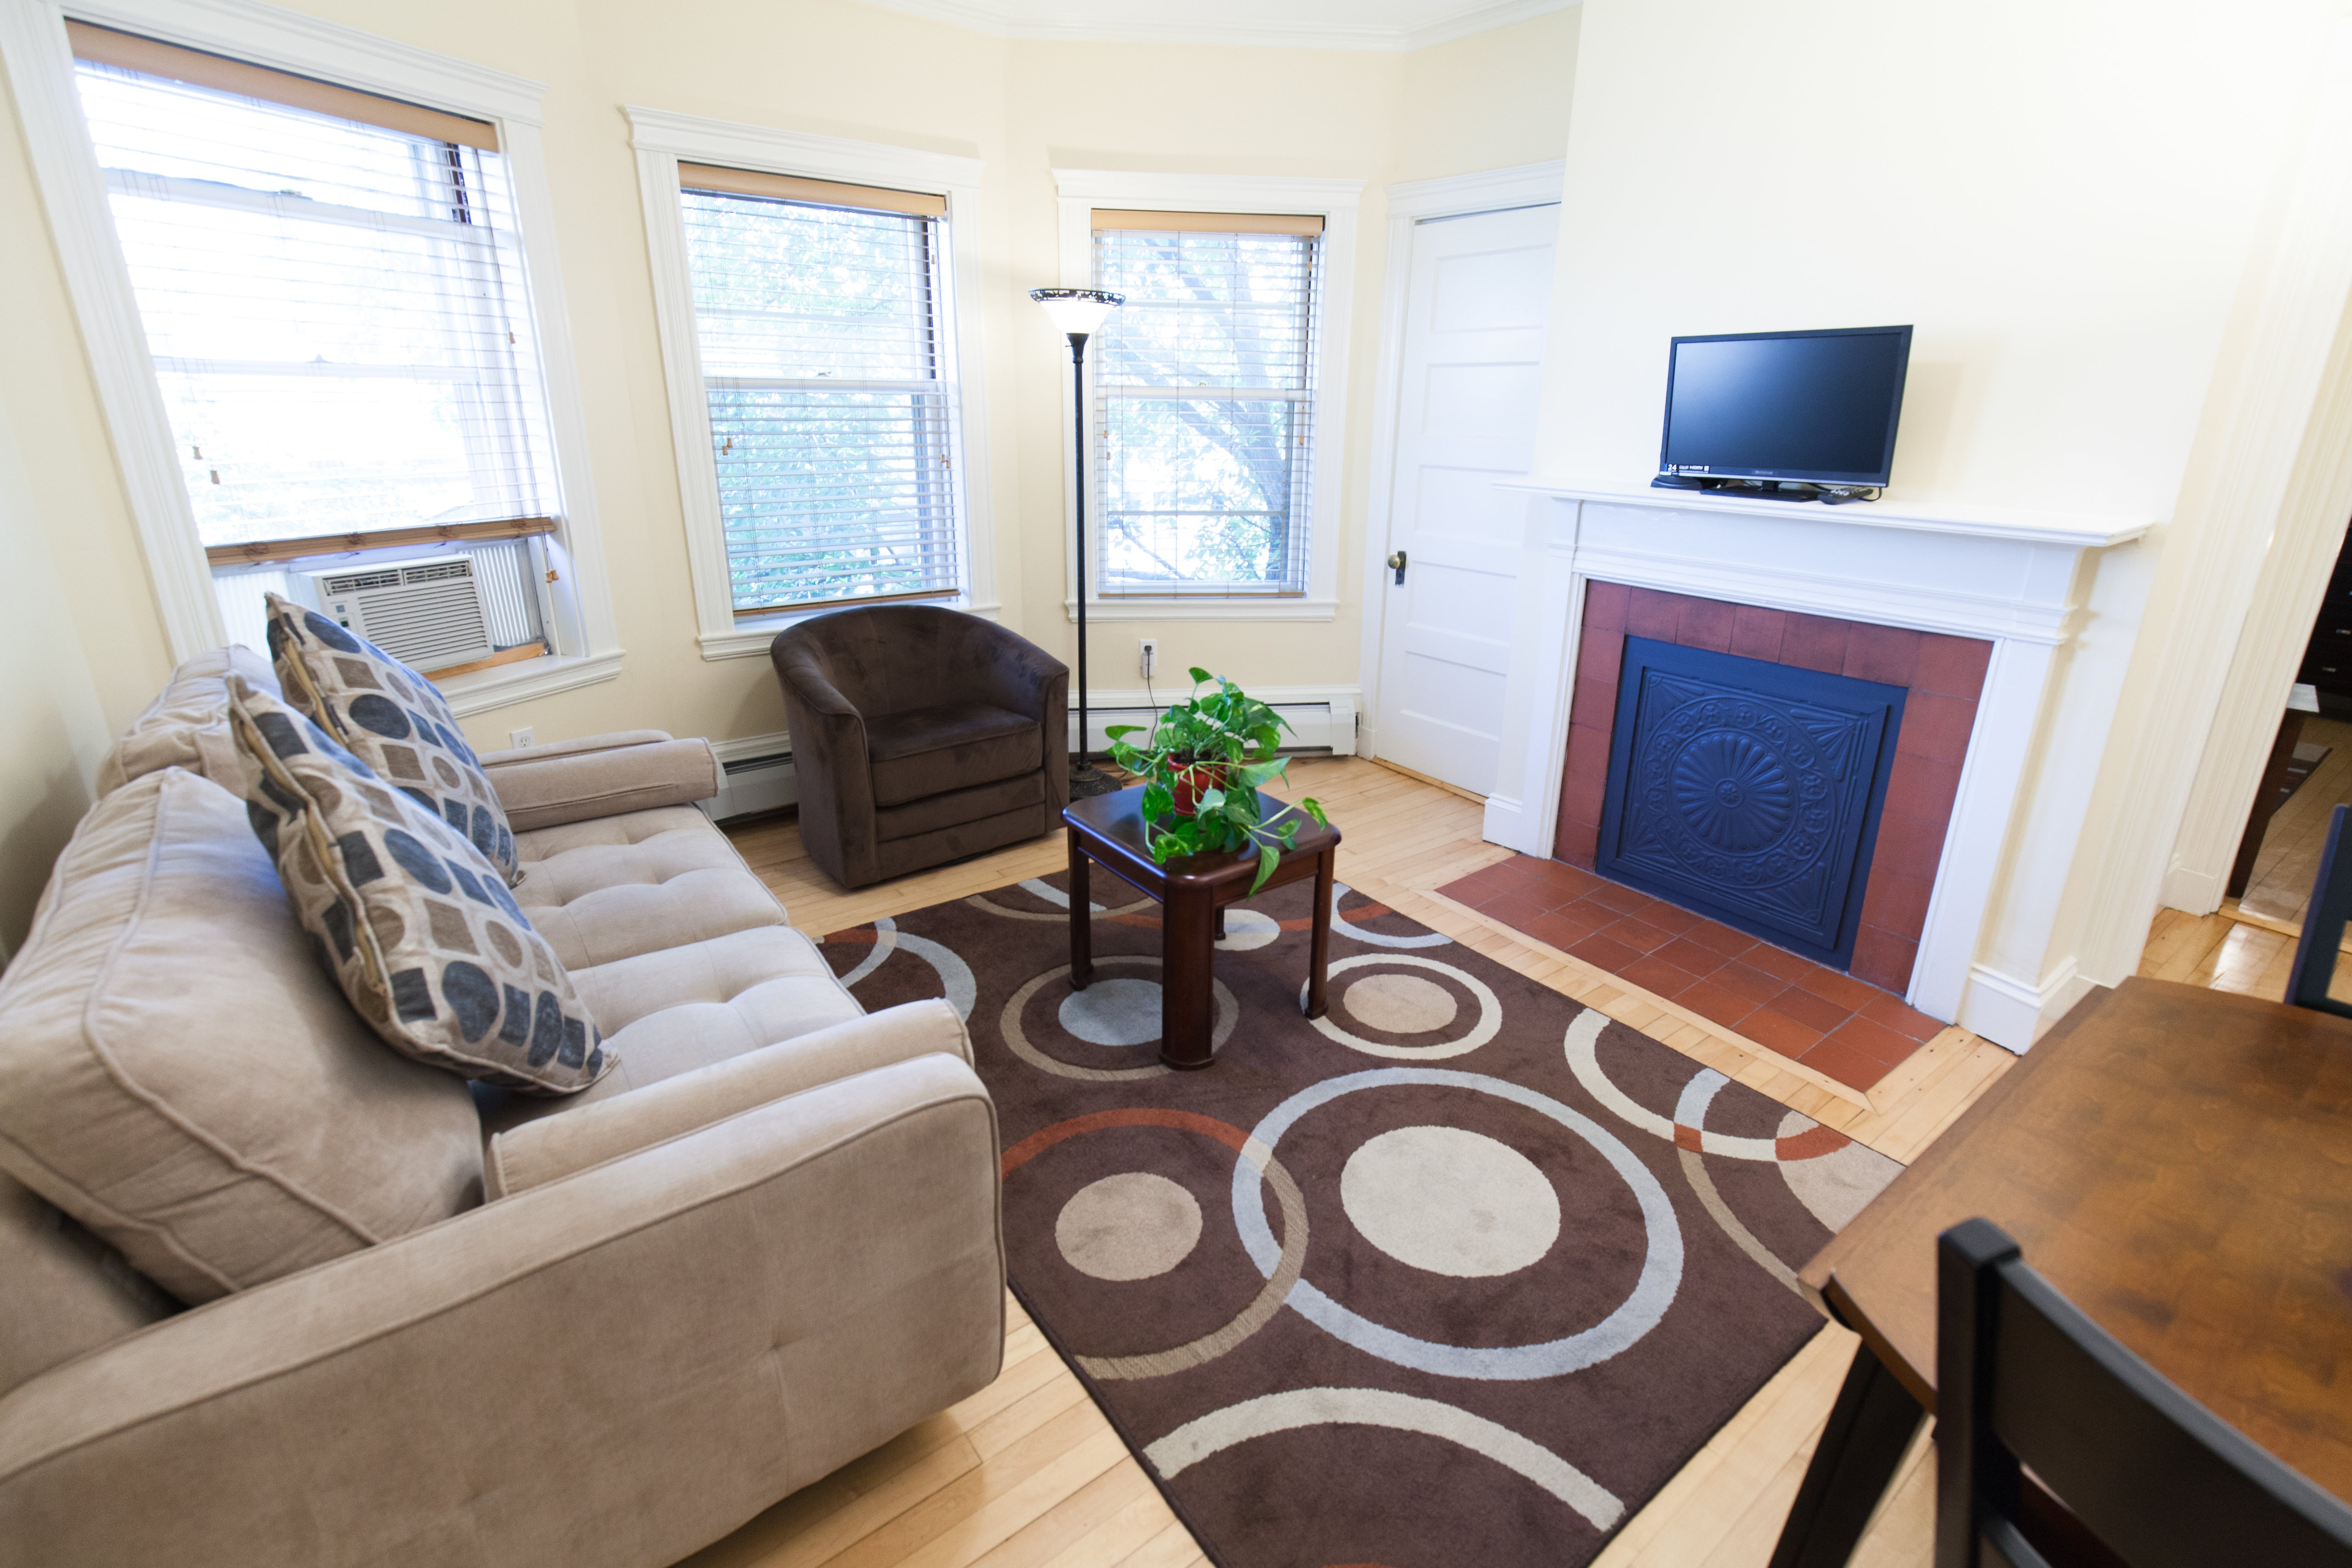 Living room of 83 Brattle Street one bedroom apartment with furnishings